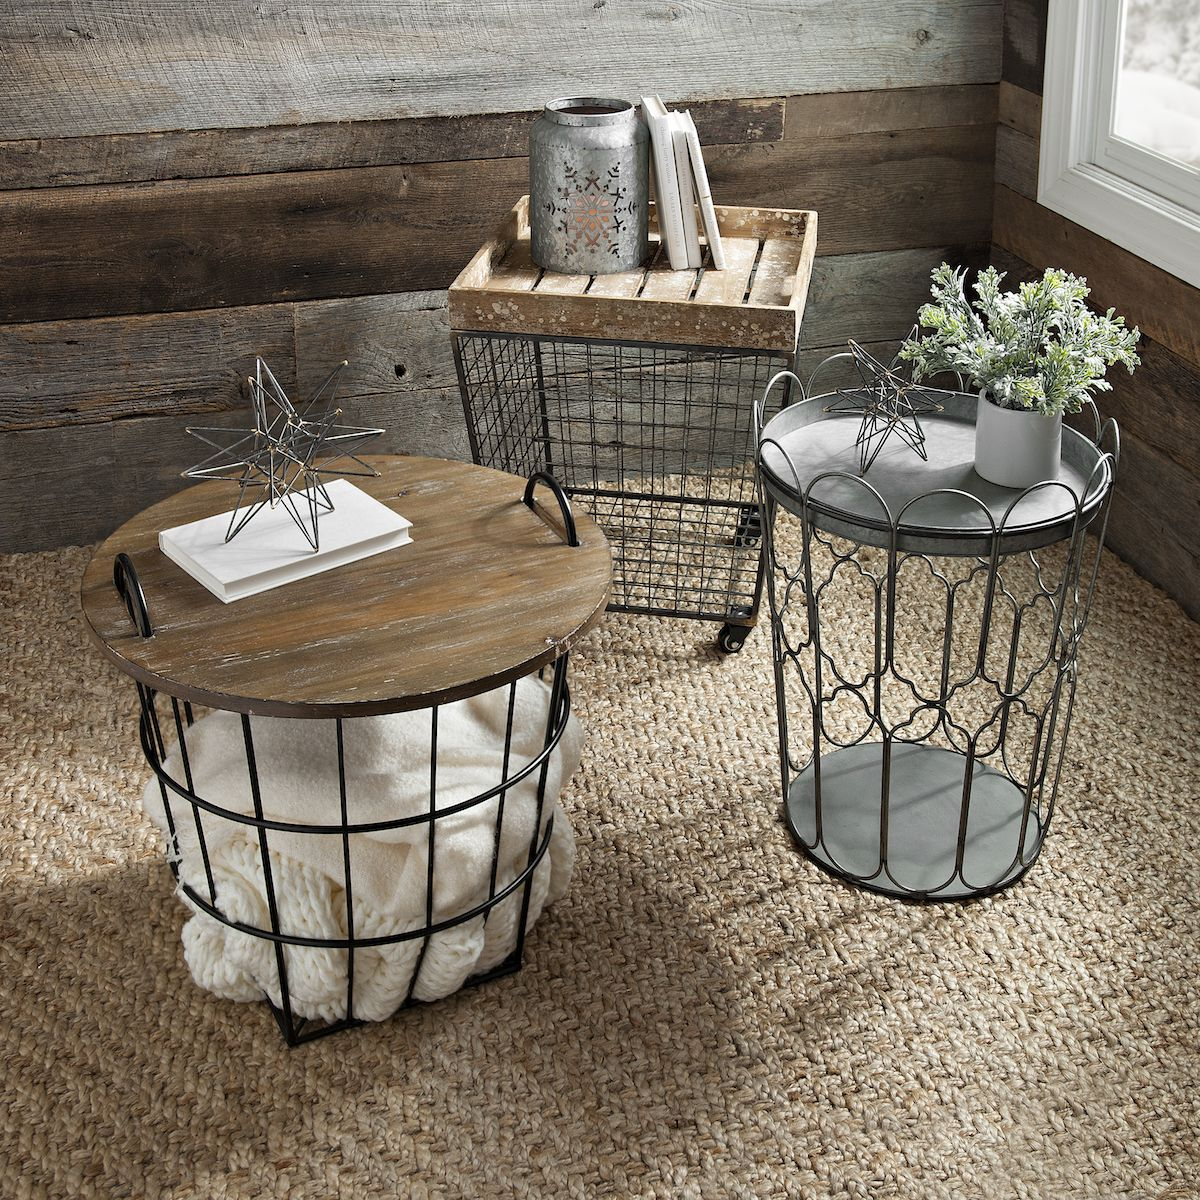 farmhouse accent table laeti decor our wire crate tables have the storage and function you need antique marble top pottery barn glass office furniture coffee garden chair covers